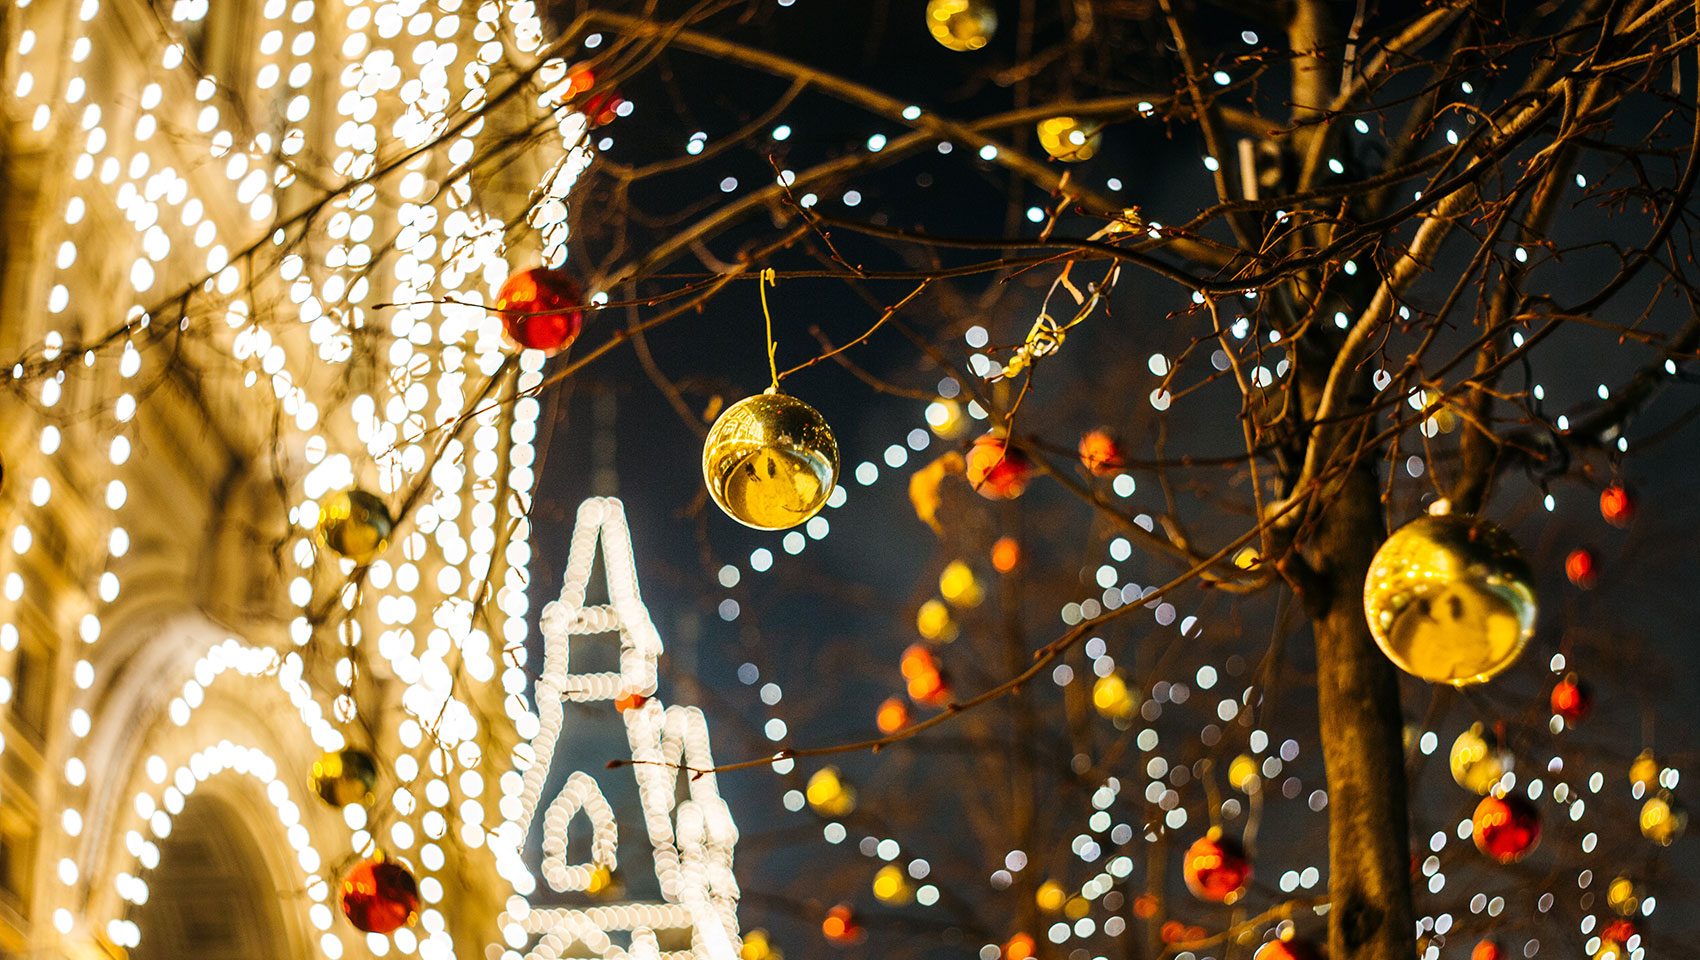 holiday lights and tree decorations